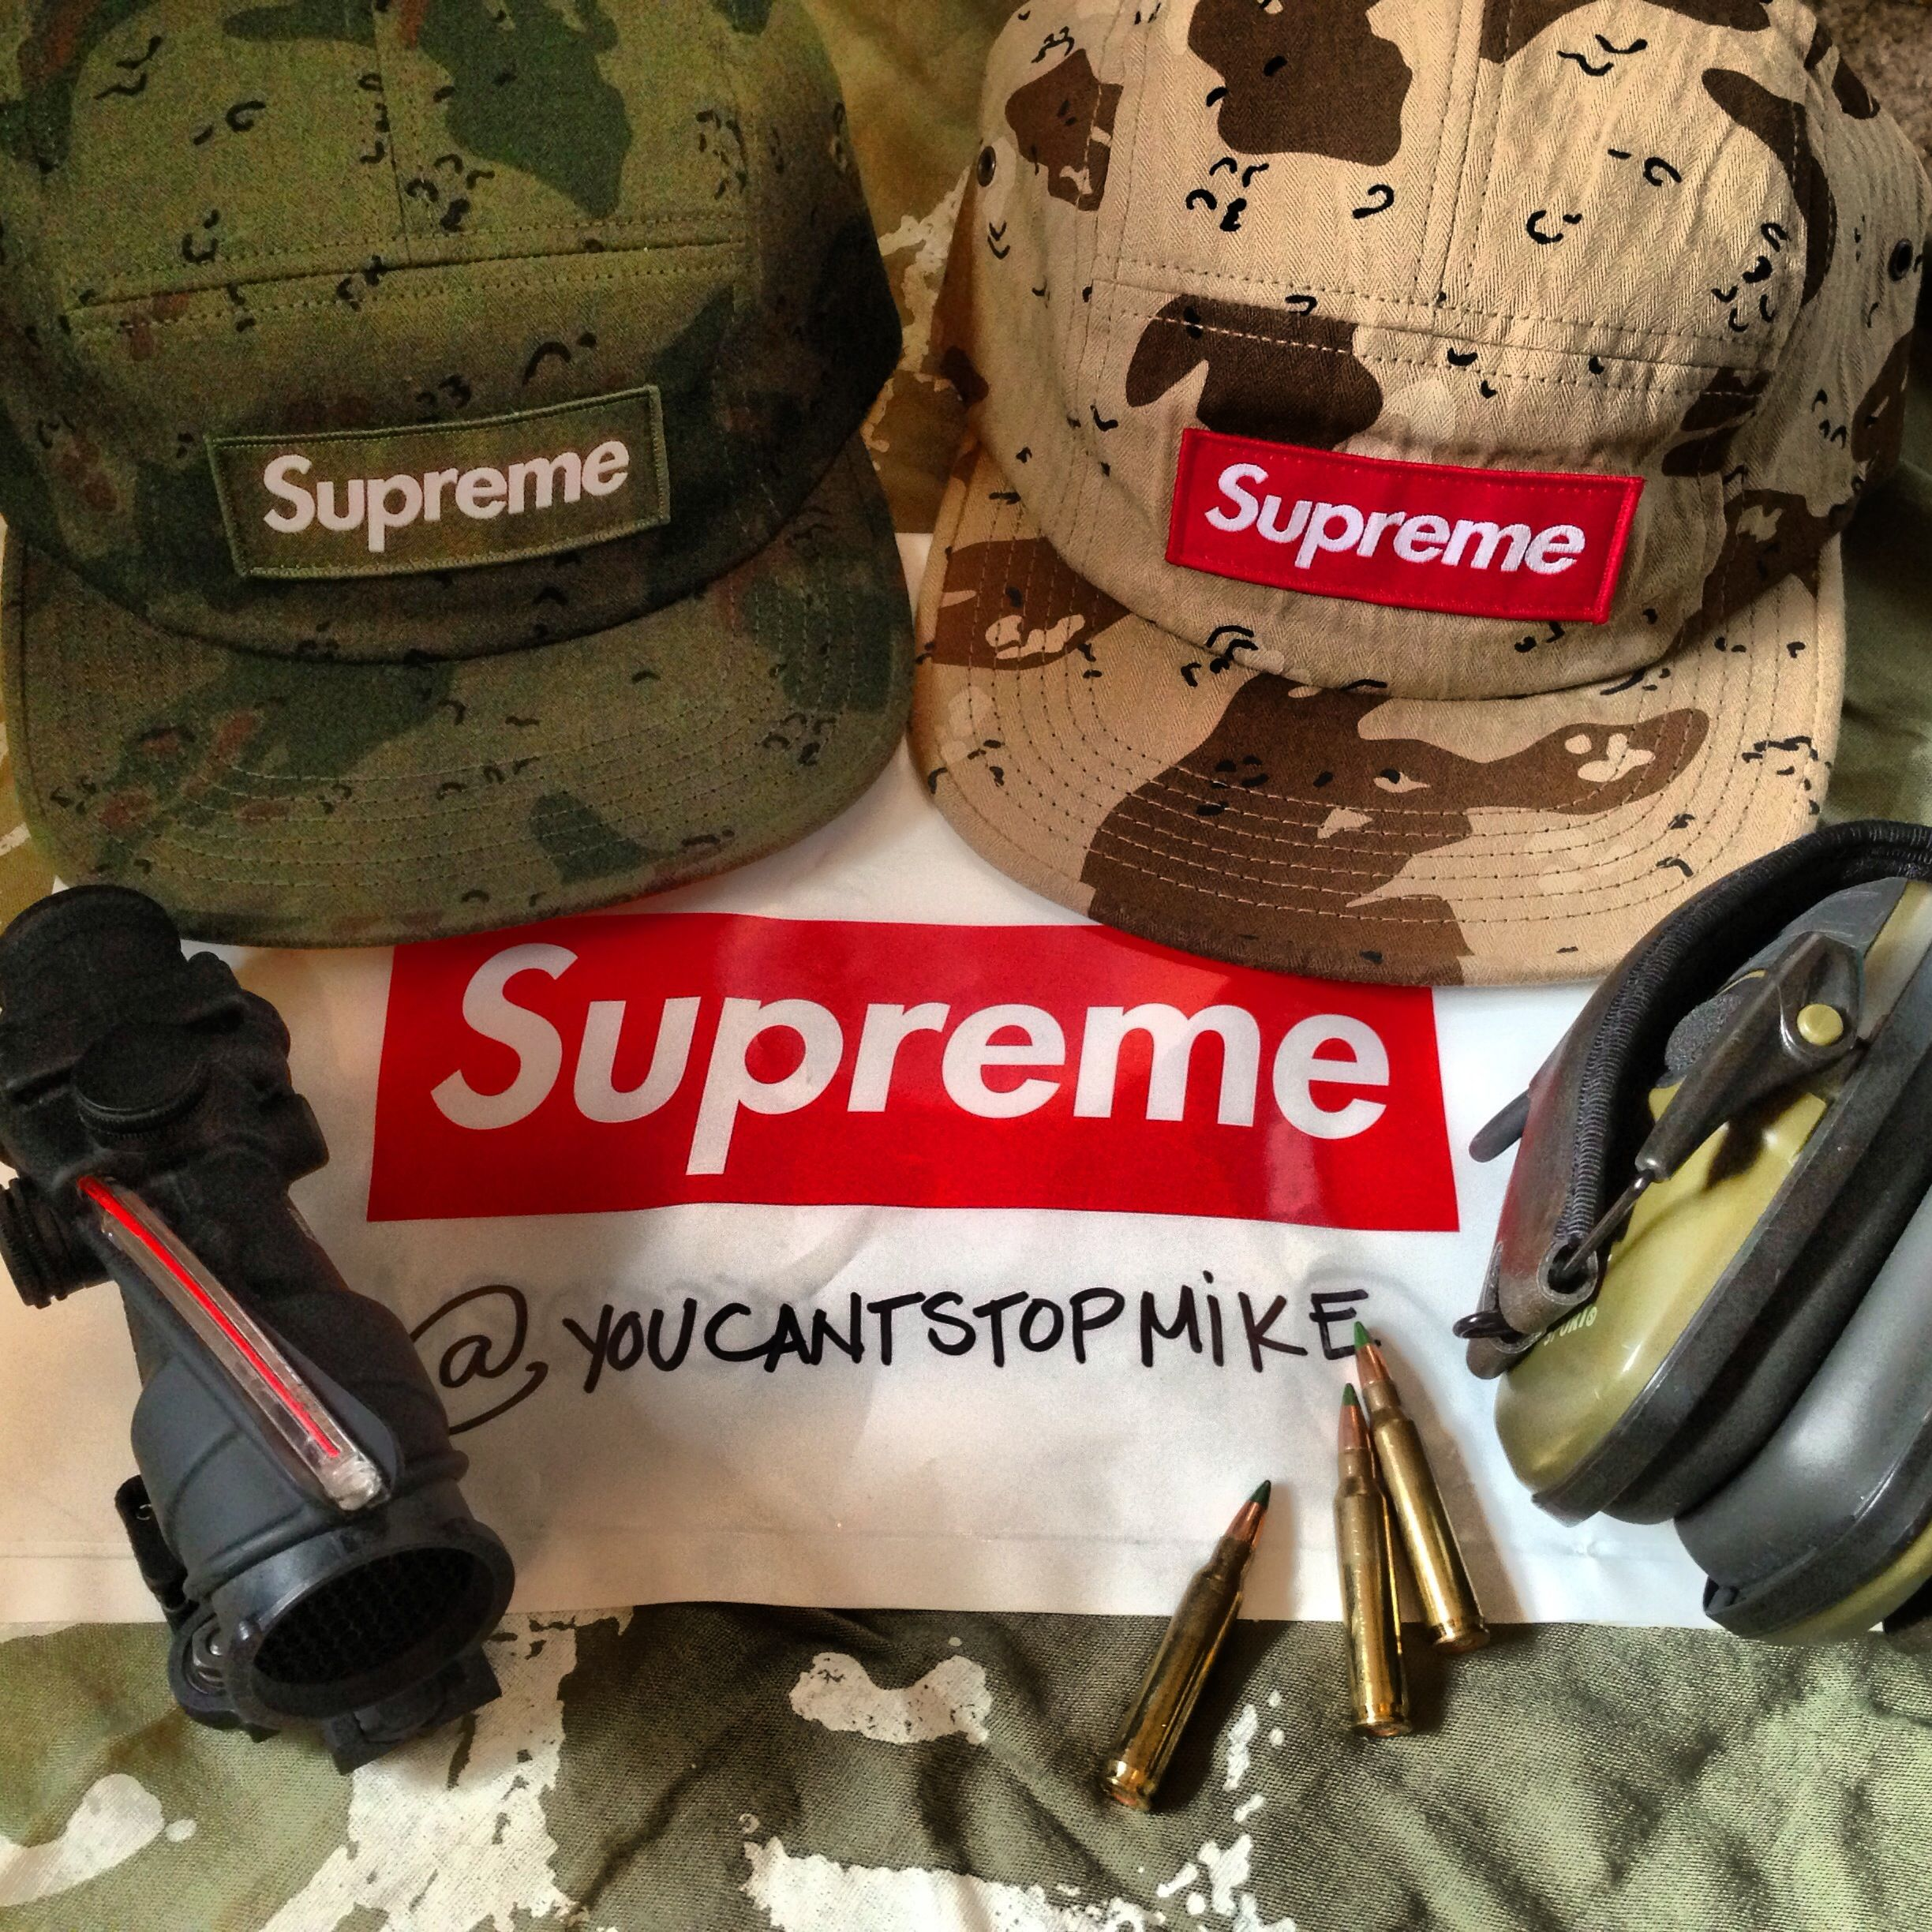 384317c4dd0 Supreme Chocolate Chip Camo Camp Hats in olive drab and dessert brown color  way. Picture also includes a Trijicon Acog TA31f red chevron BAC scope.